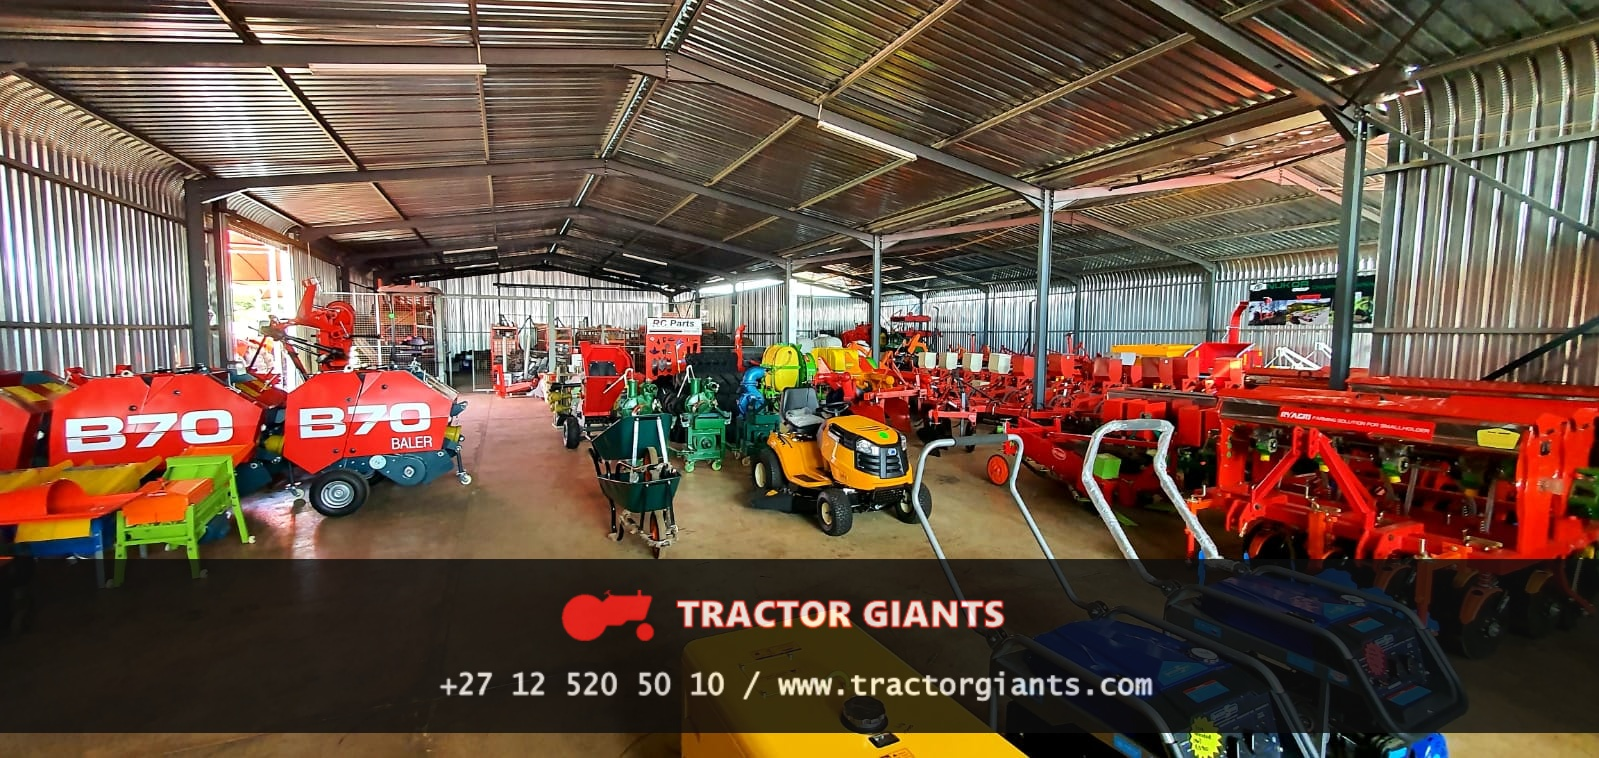 Farming Implements - Tractor Giants 2